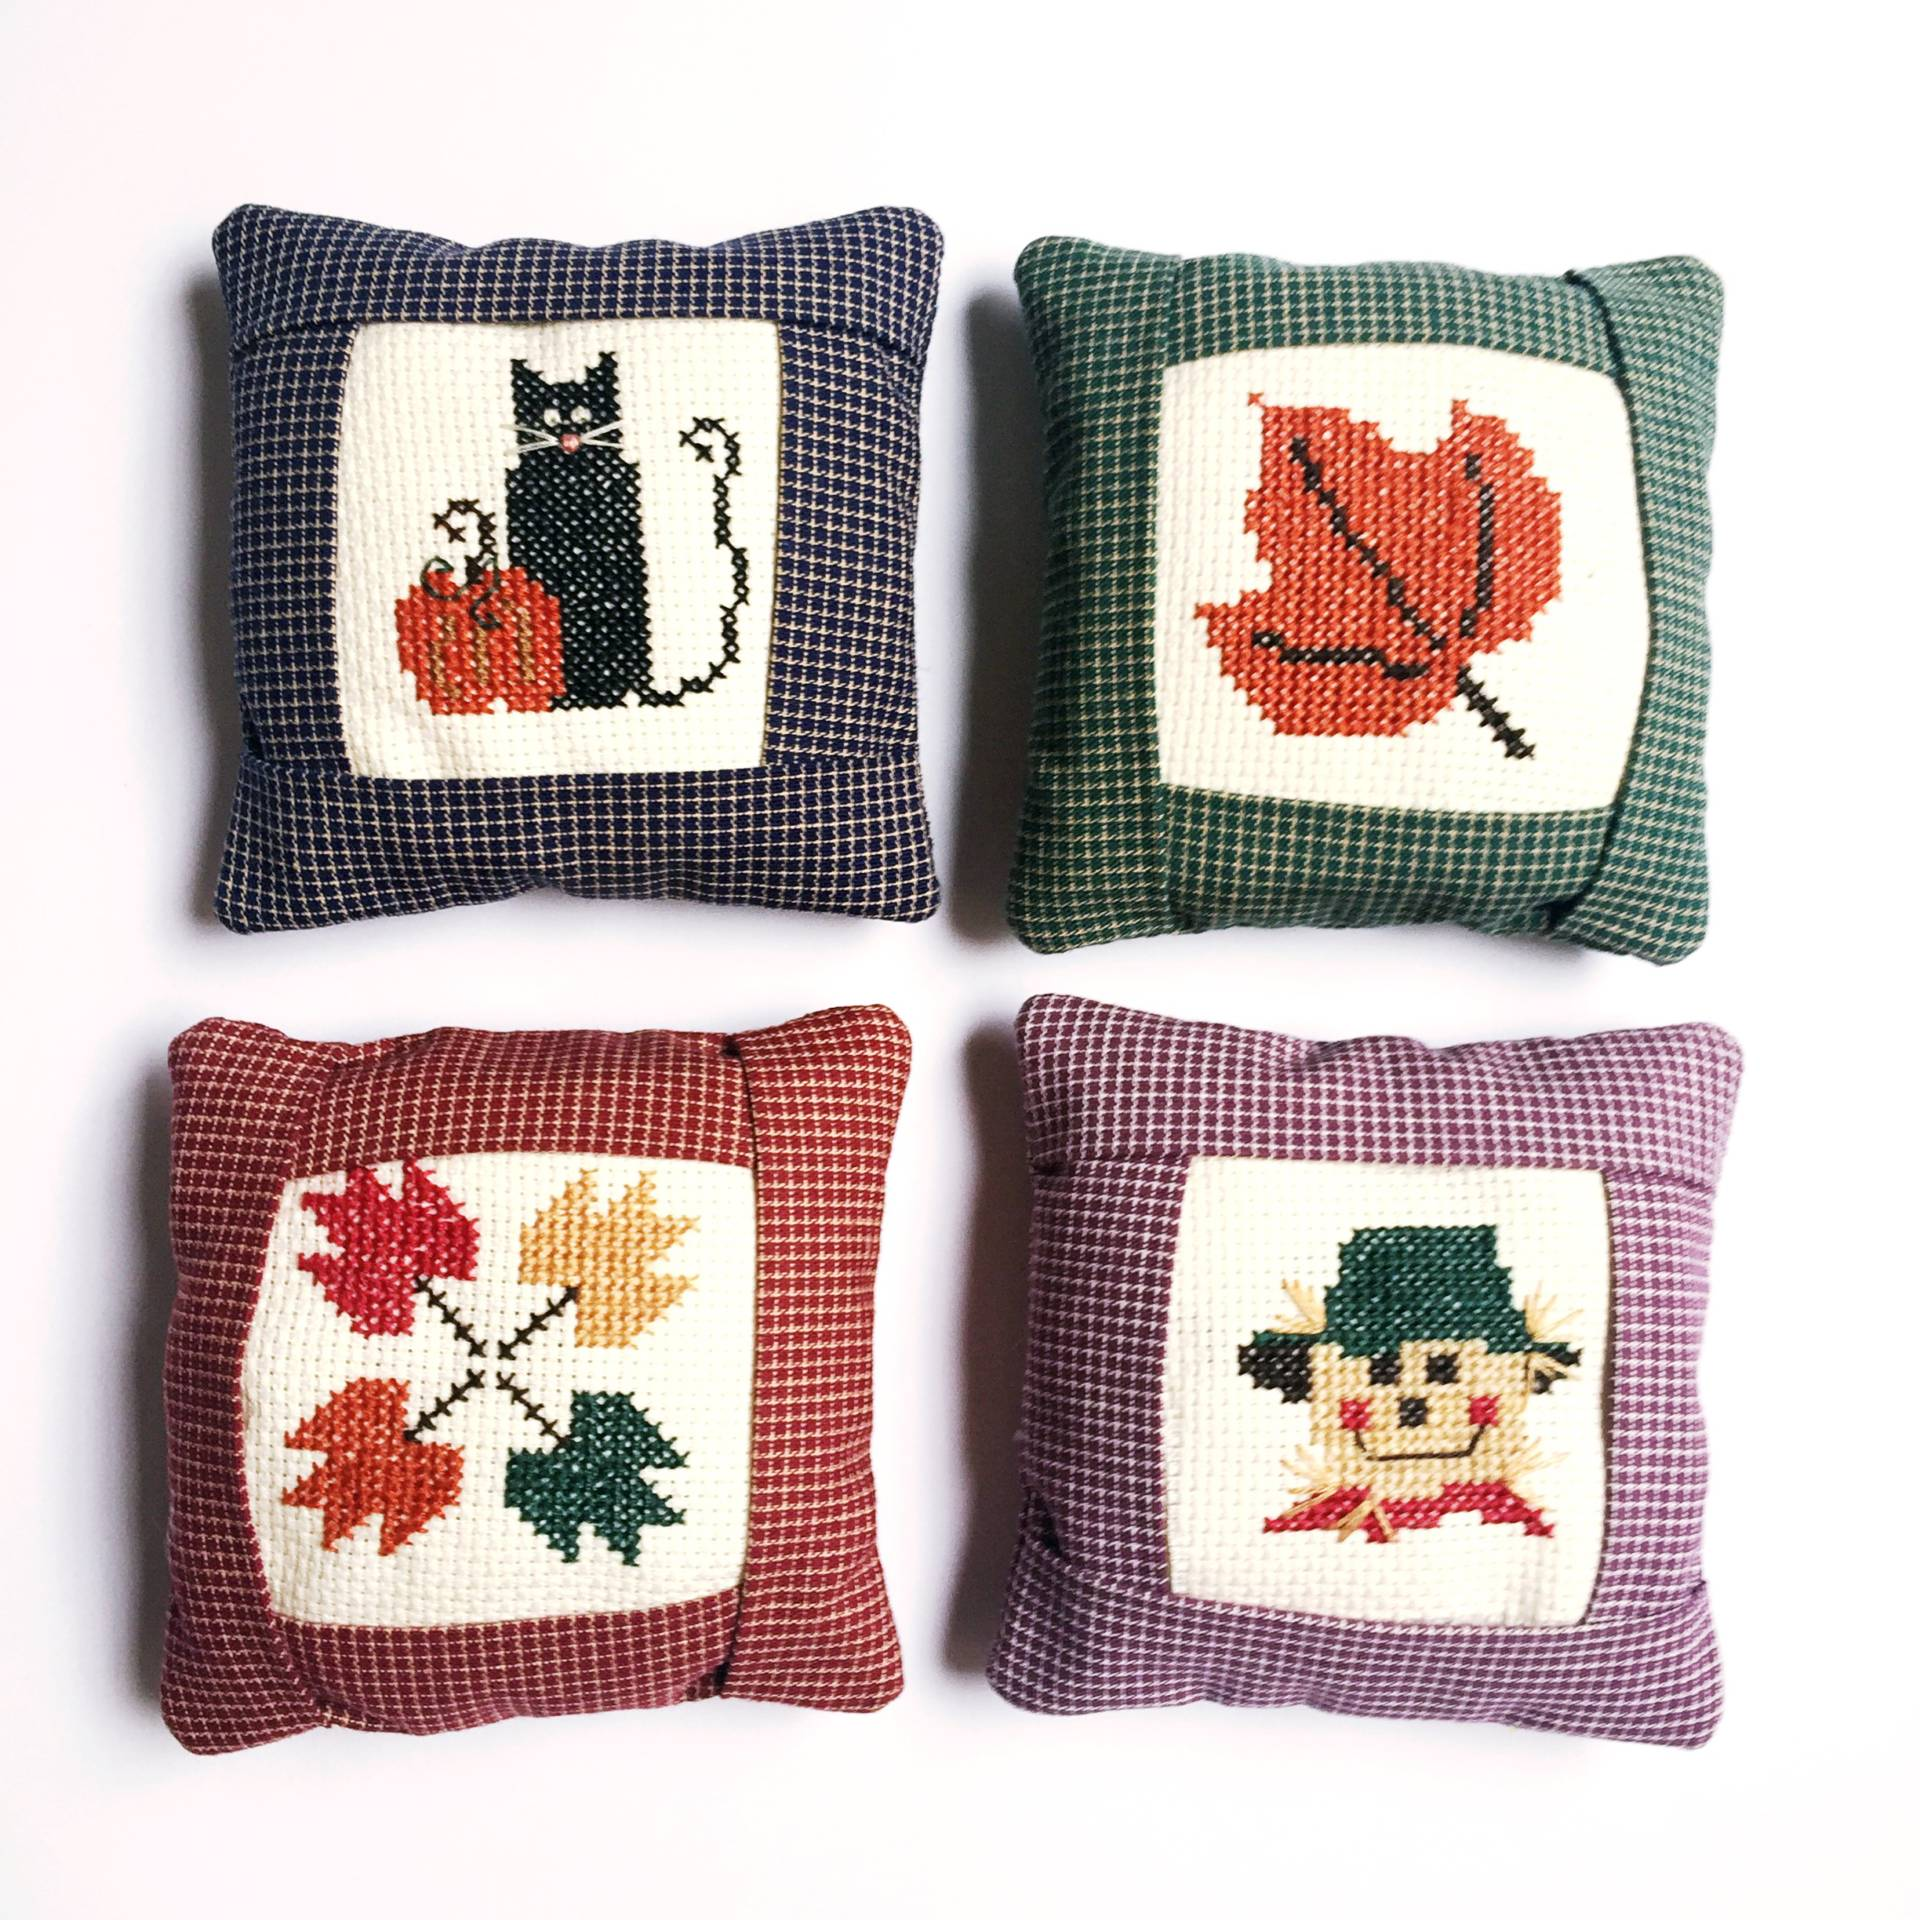 Flashback Friday cross stitch projects from when I was a kid! And, of course, perfect for fall!